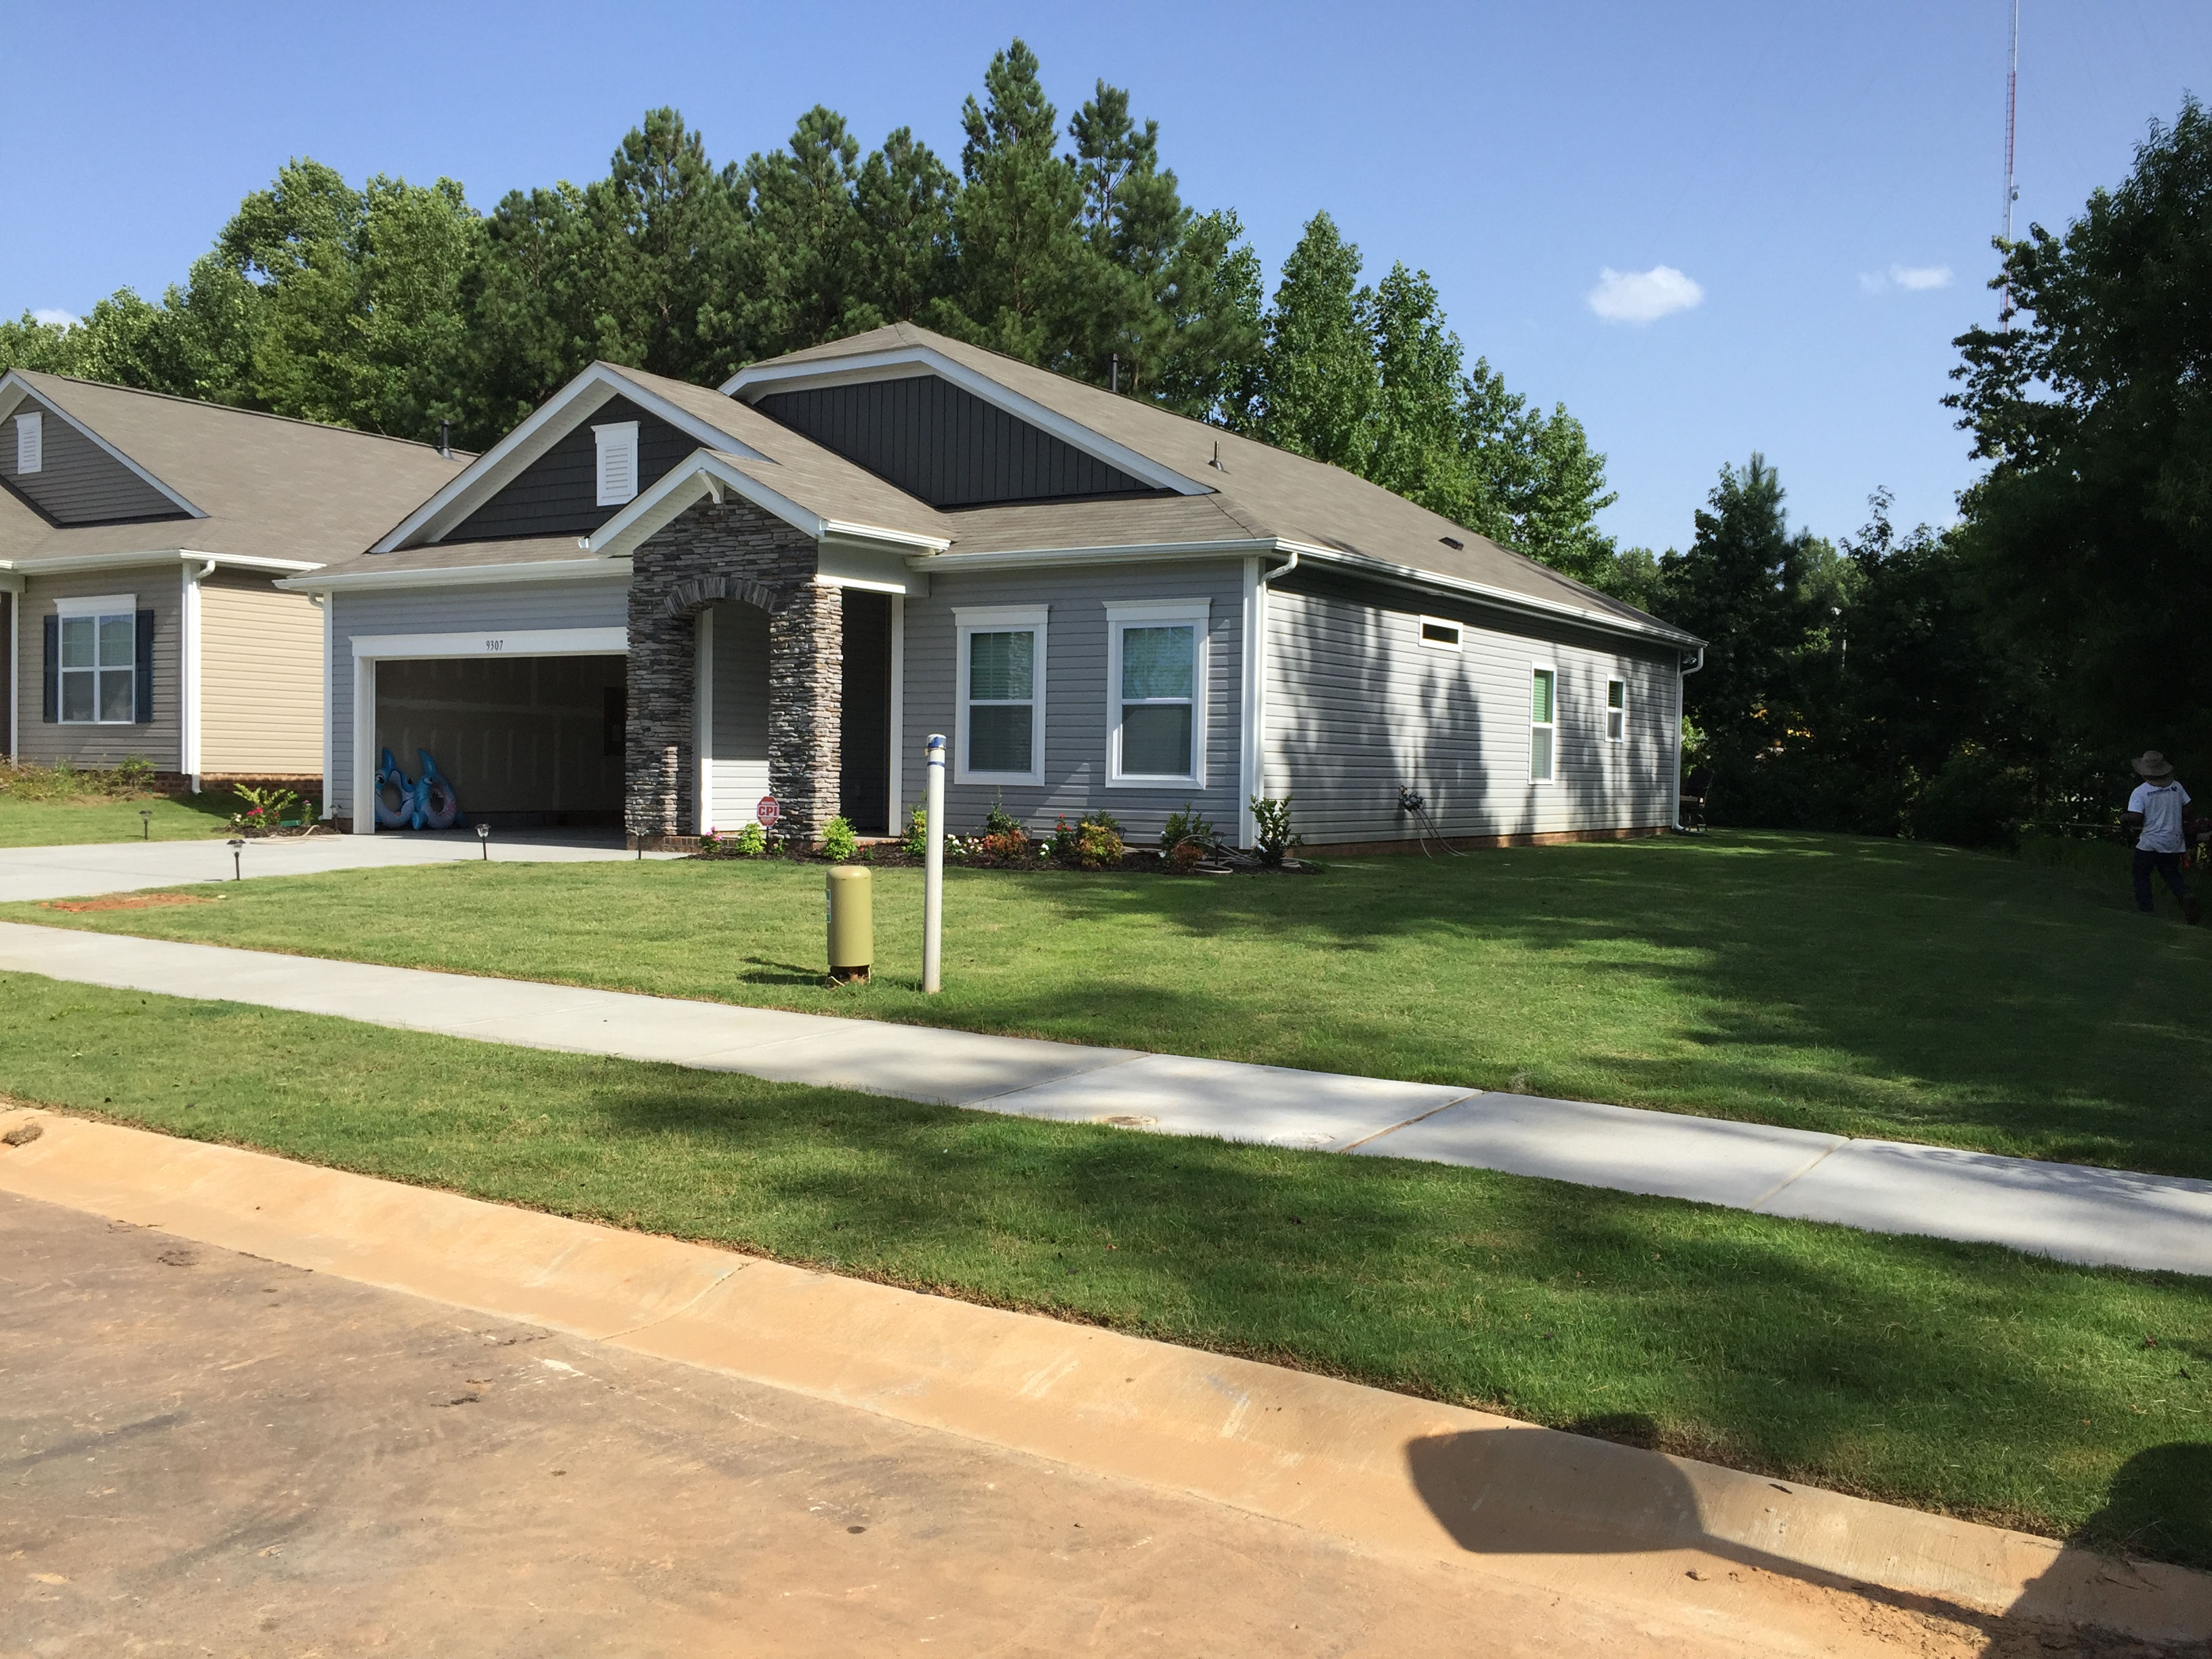 Lawn Mowing Contractor in Charlotte, NC, 28205